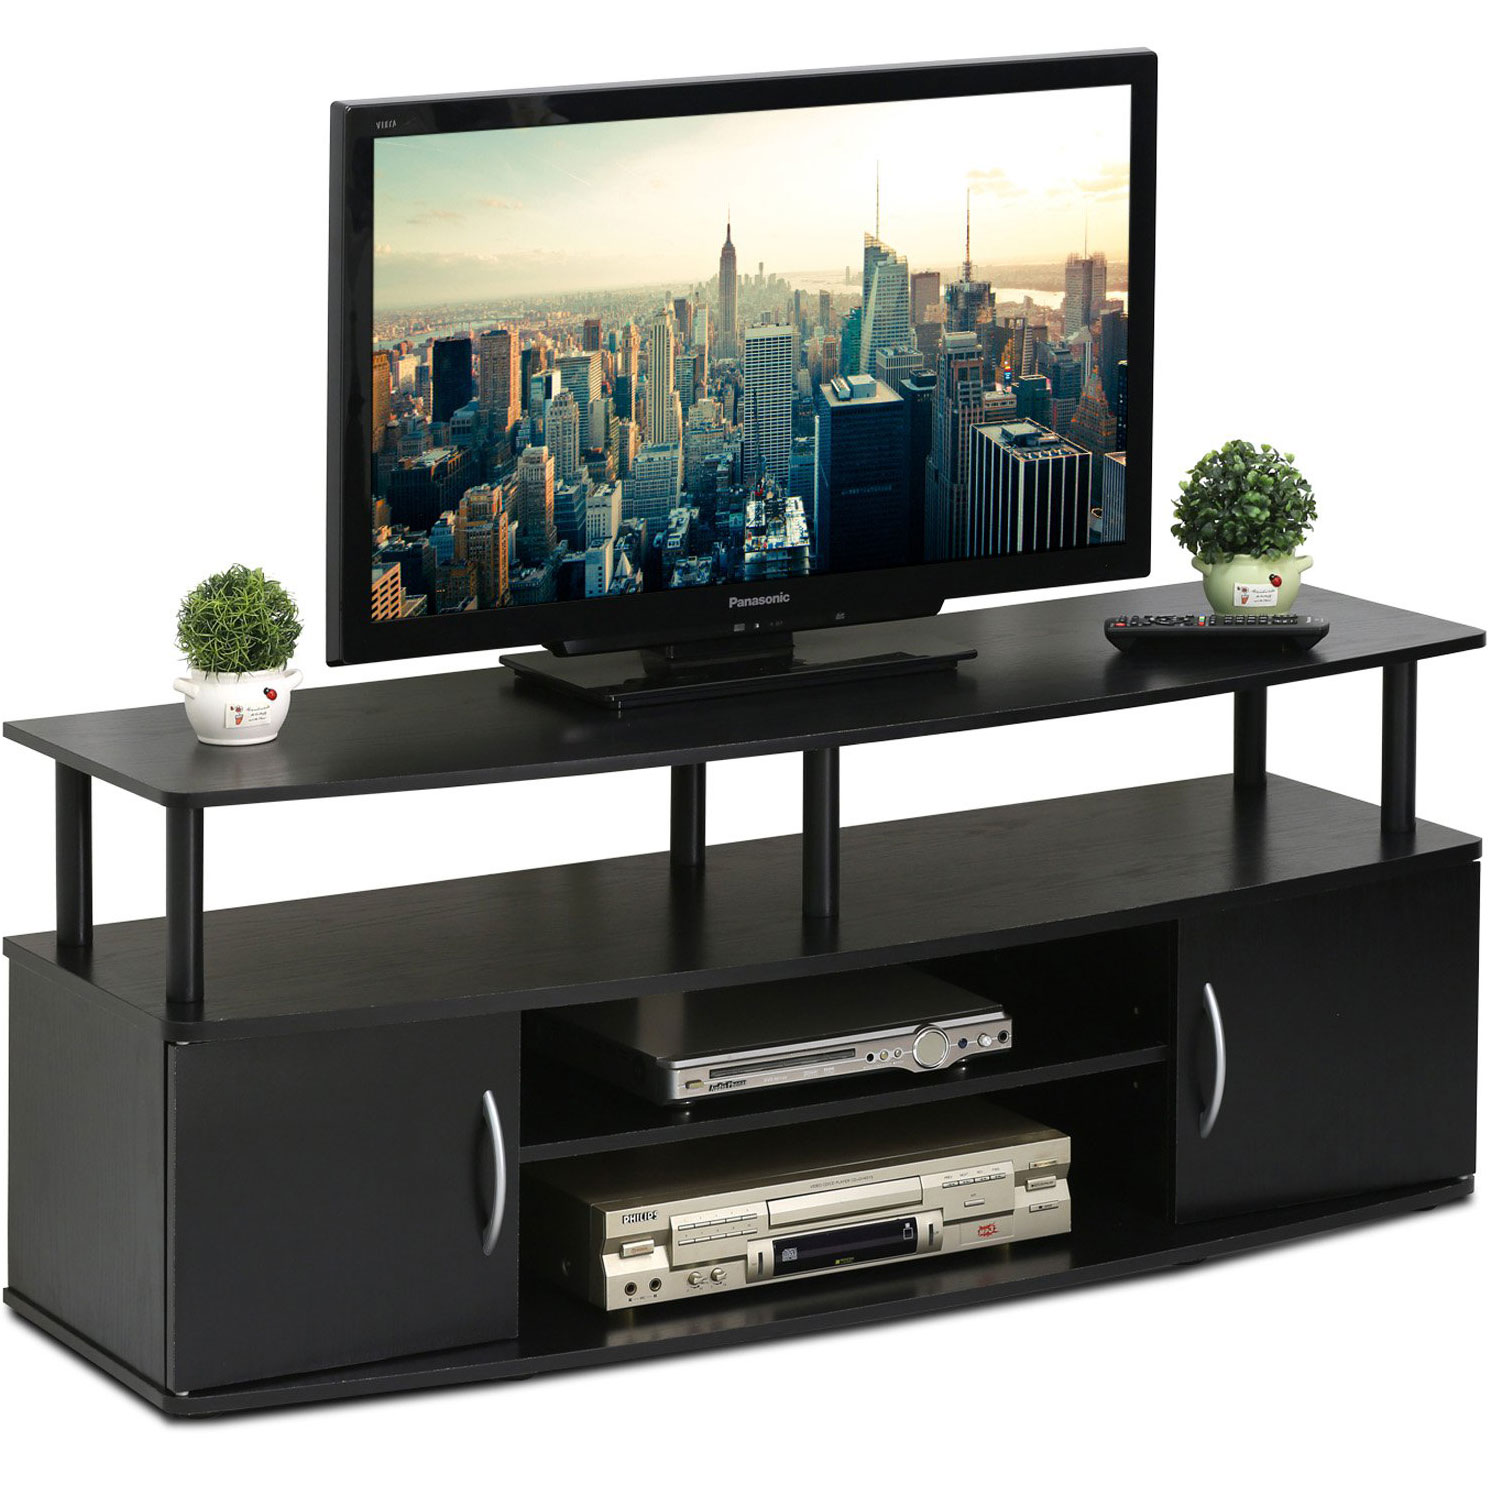 Details about Large Entertainment Center 50 inch Wide TV, Open Shelf Modern  Black Wood Finish